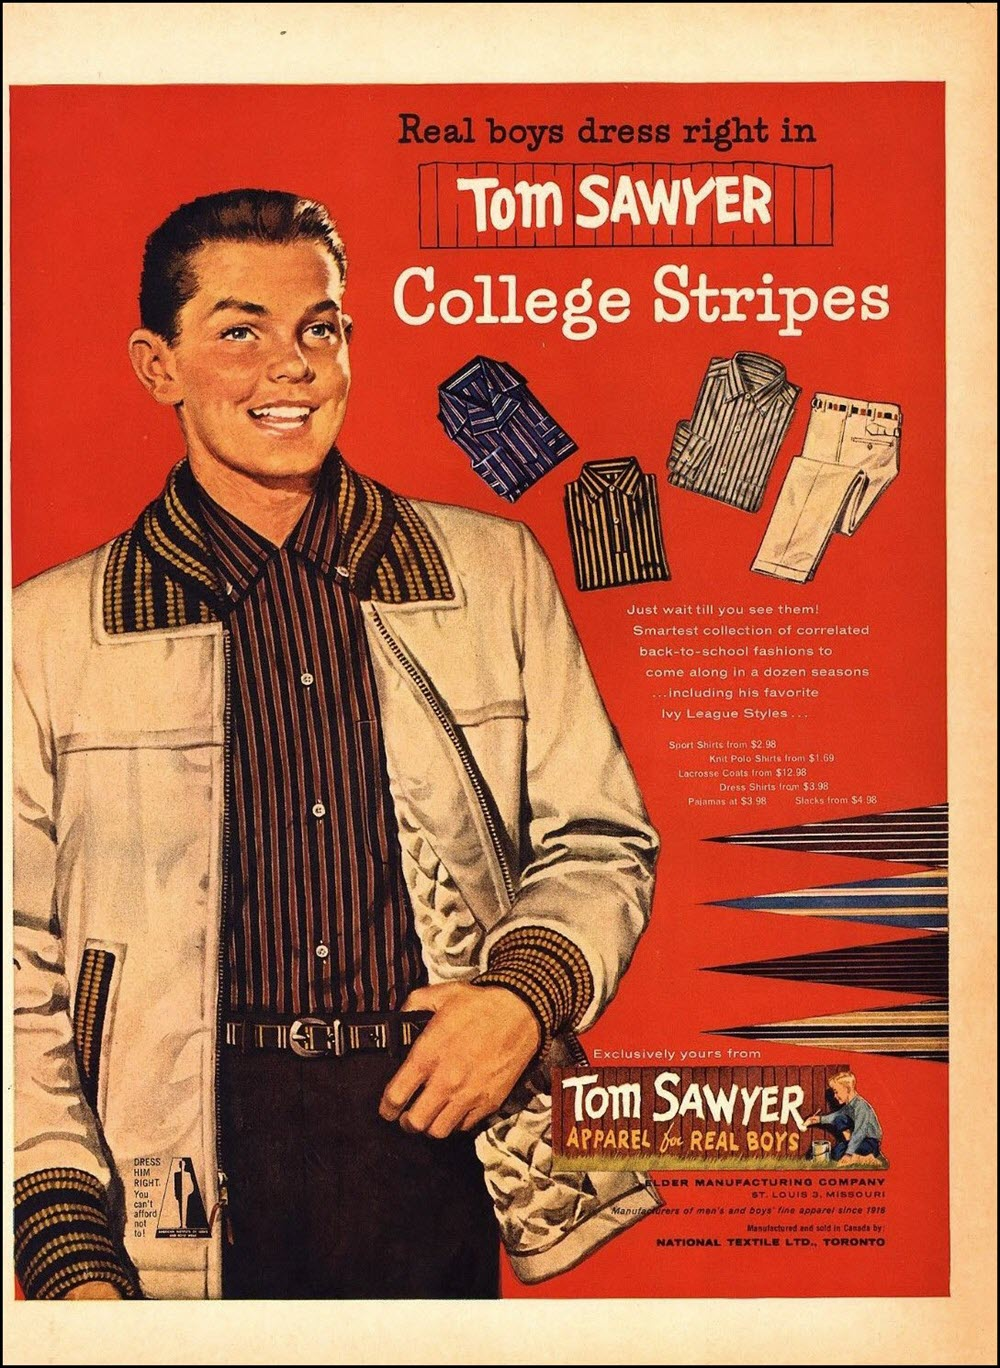 Vintage back-to-school advertisement: Tom Sawyer, 1957